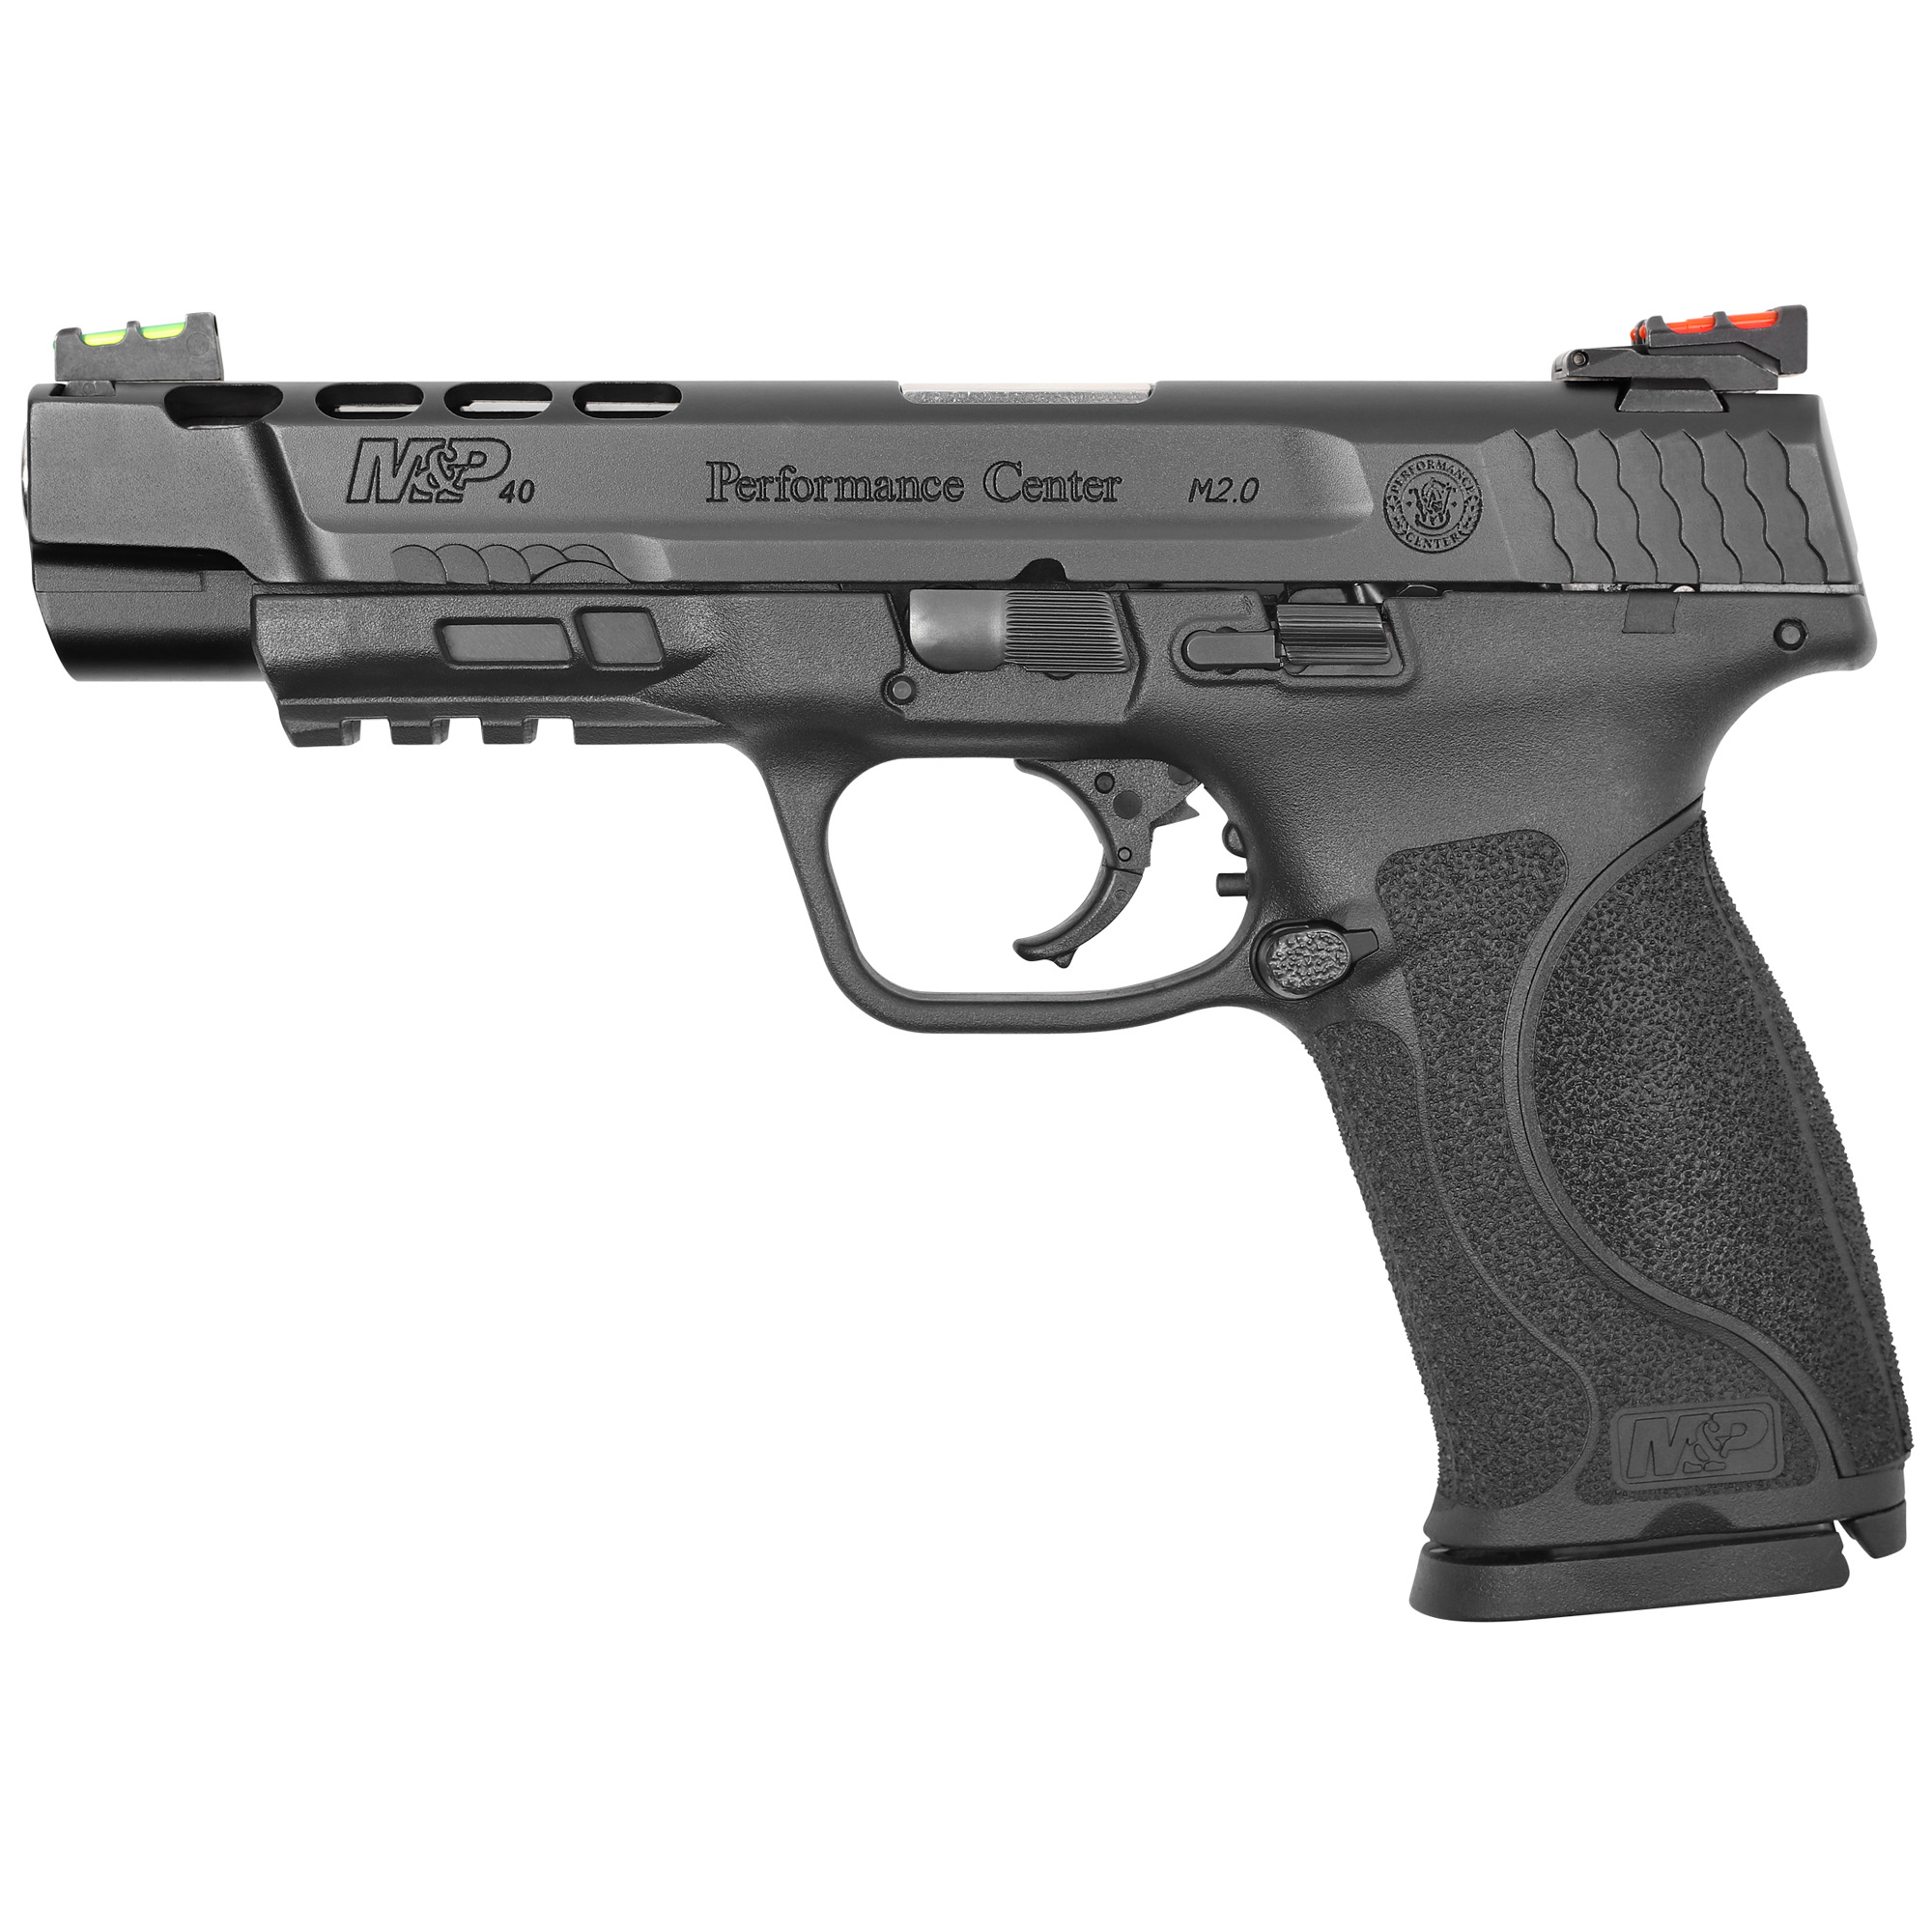 Smith and Wesson M&P40 M2.0 Performance Center 40 S&W